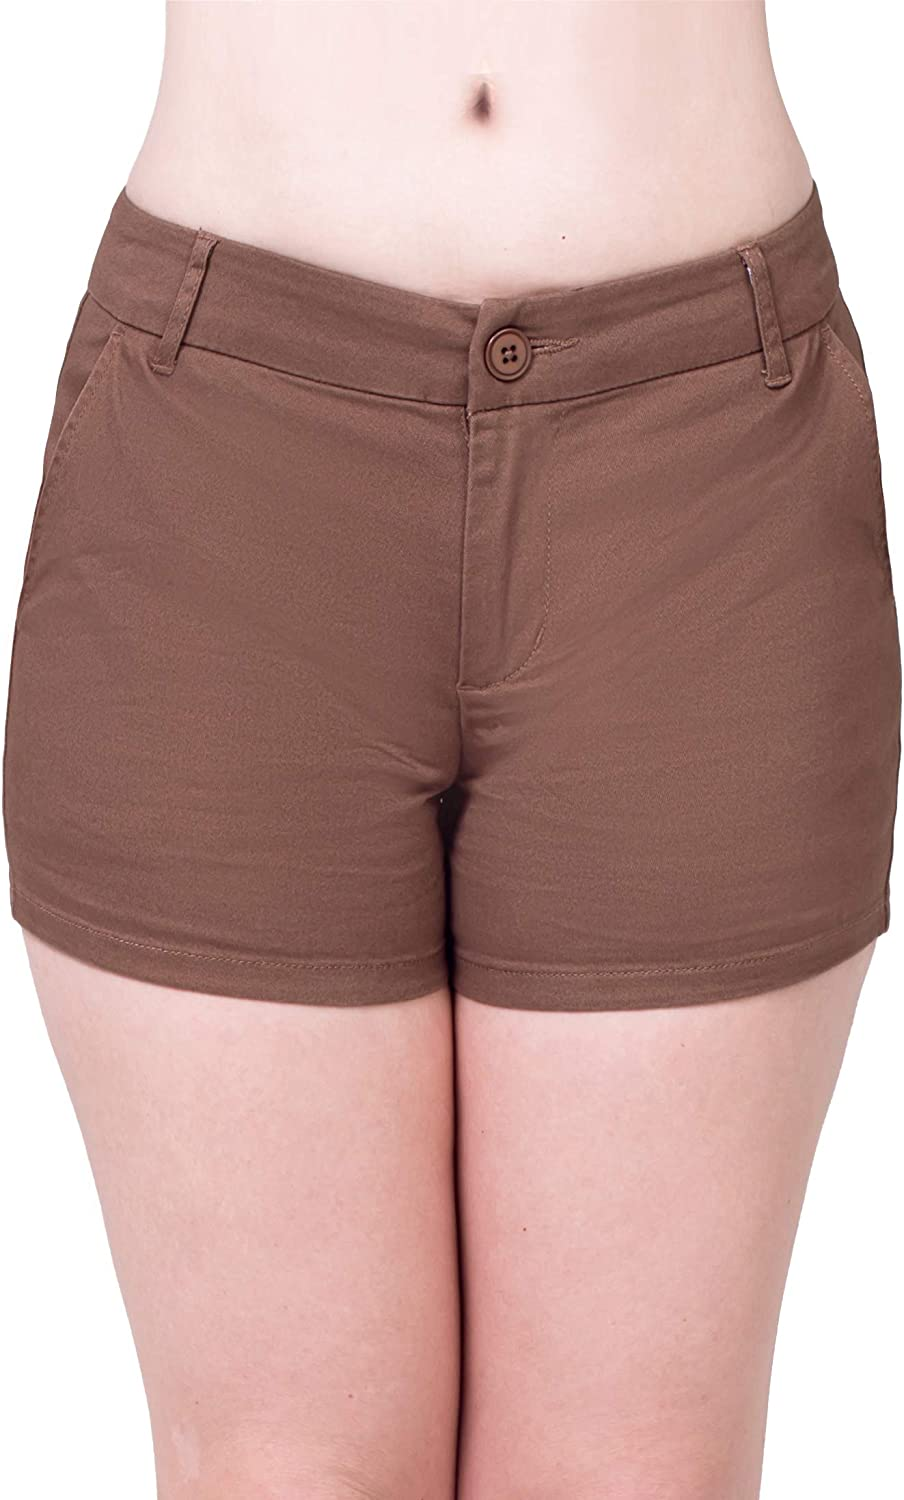 Bebop Women's Casual Shorts, Stretch Cotton Twill